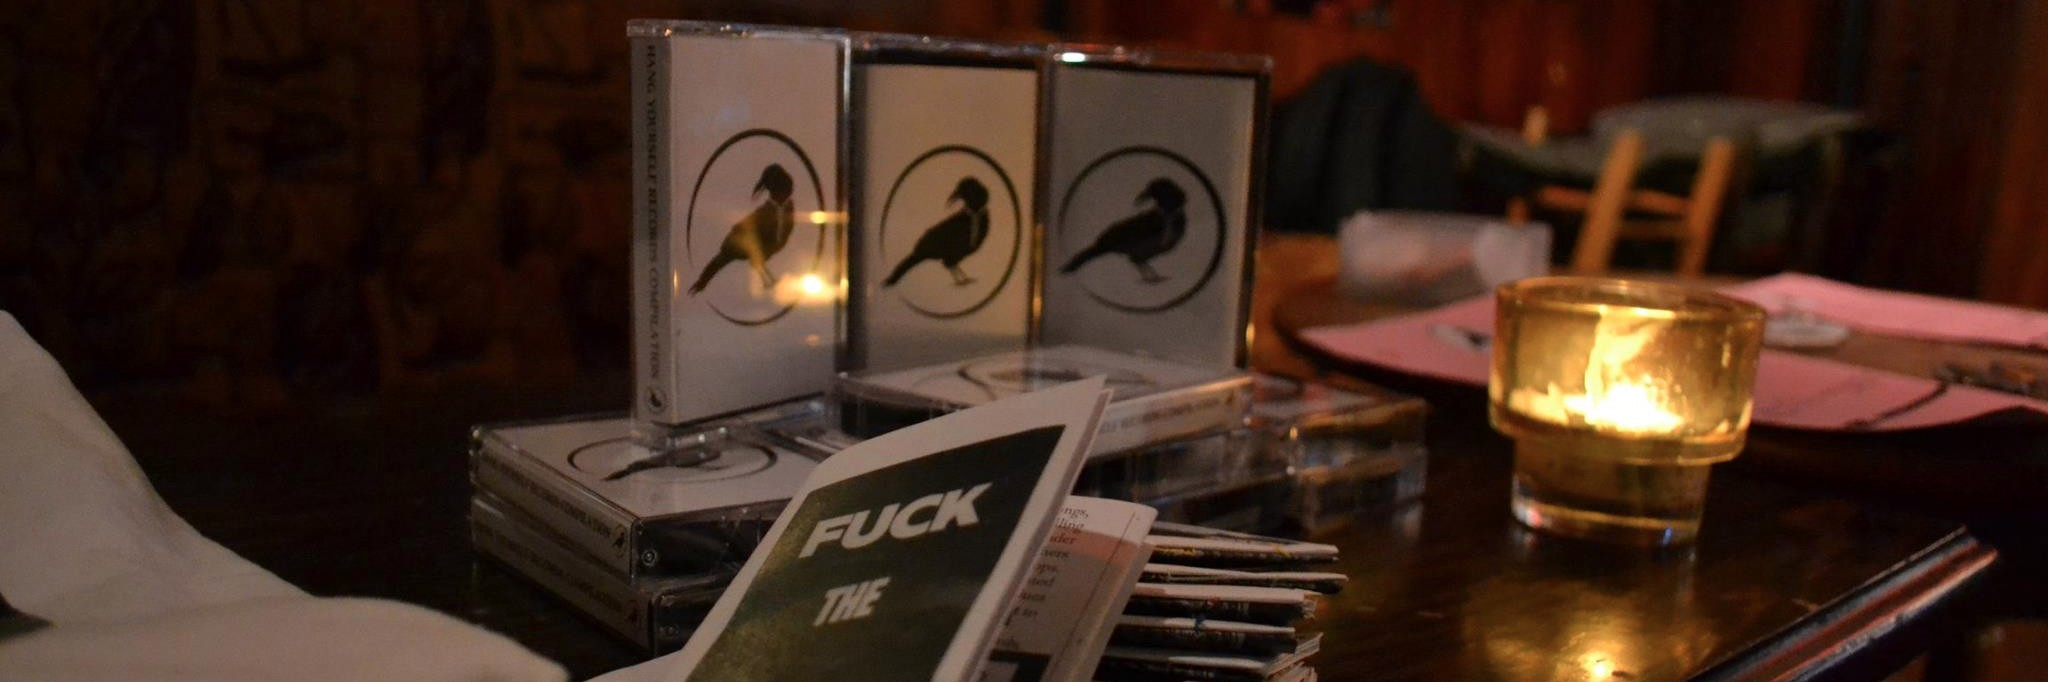 Hang Yourself Records Party @ The Ivy House, London - 20/03/17